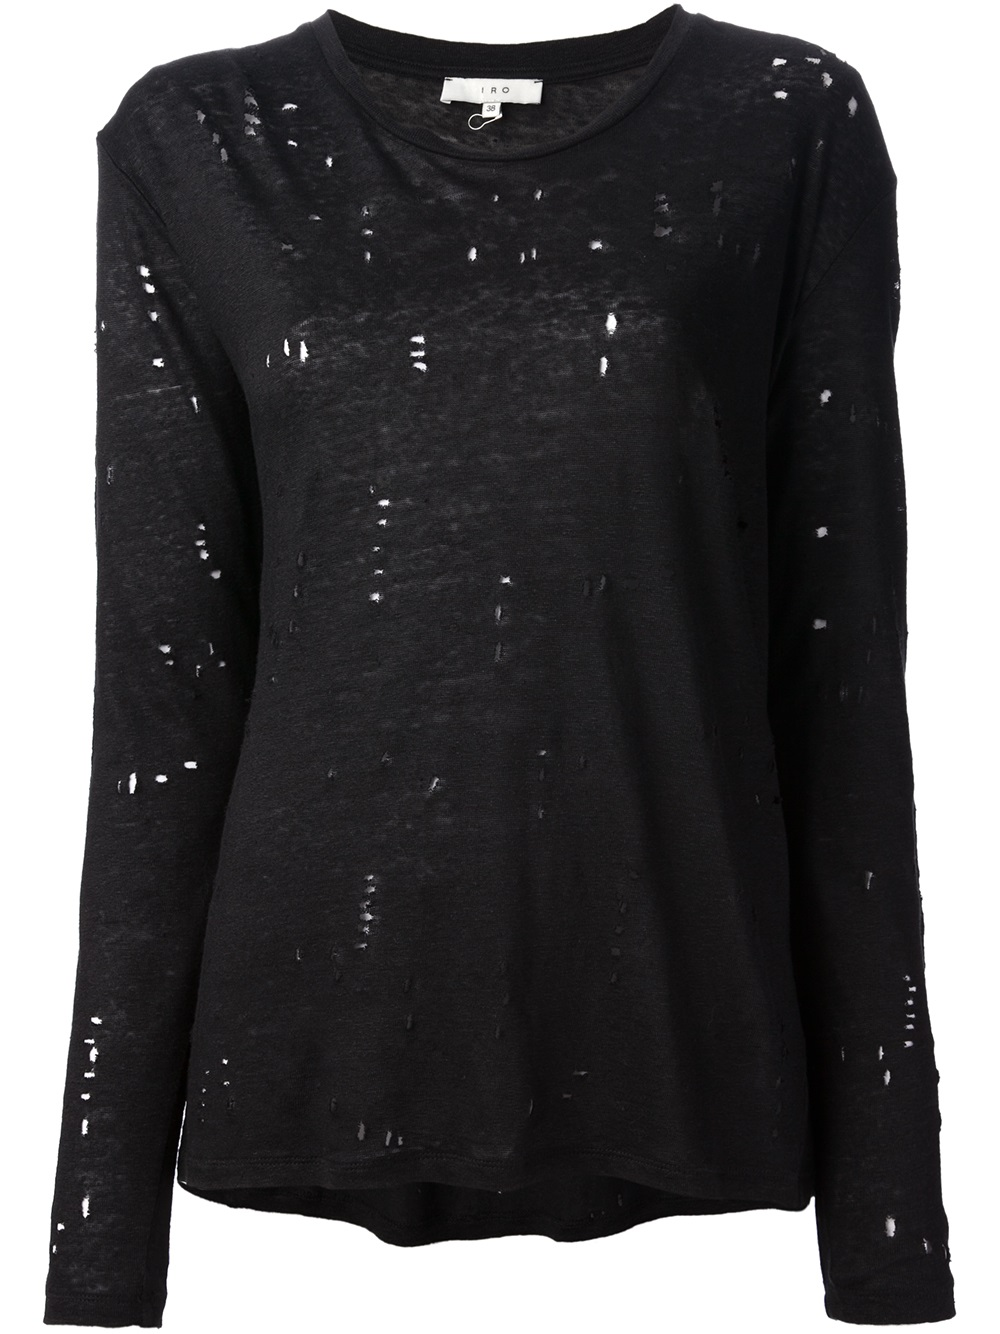 Lyst iro iro distressed t shirt in black for How to make a distressed shirt